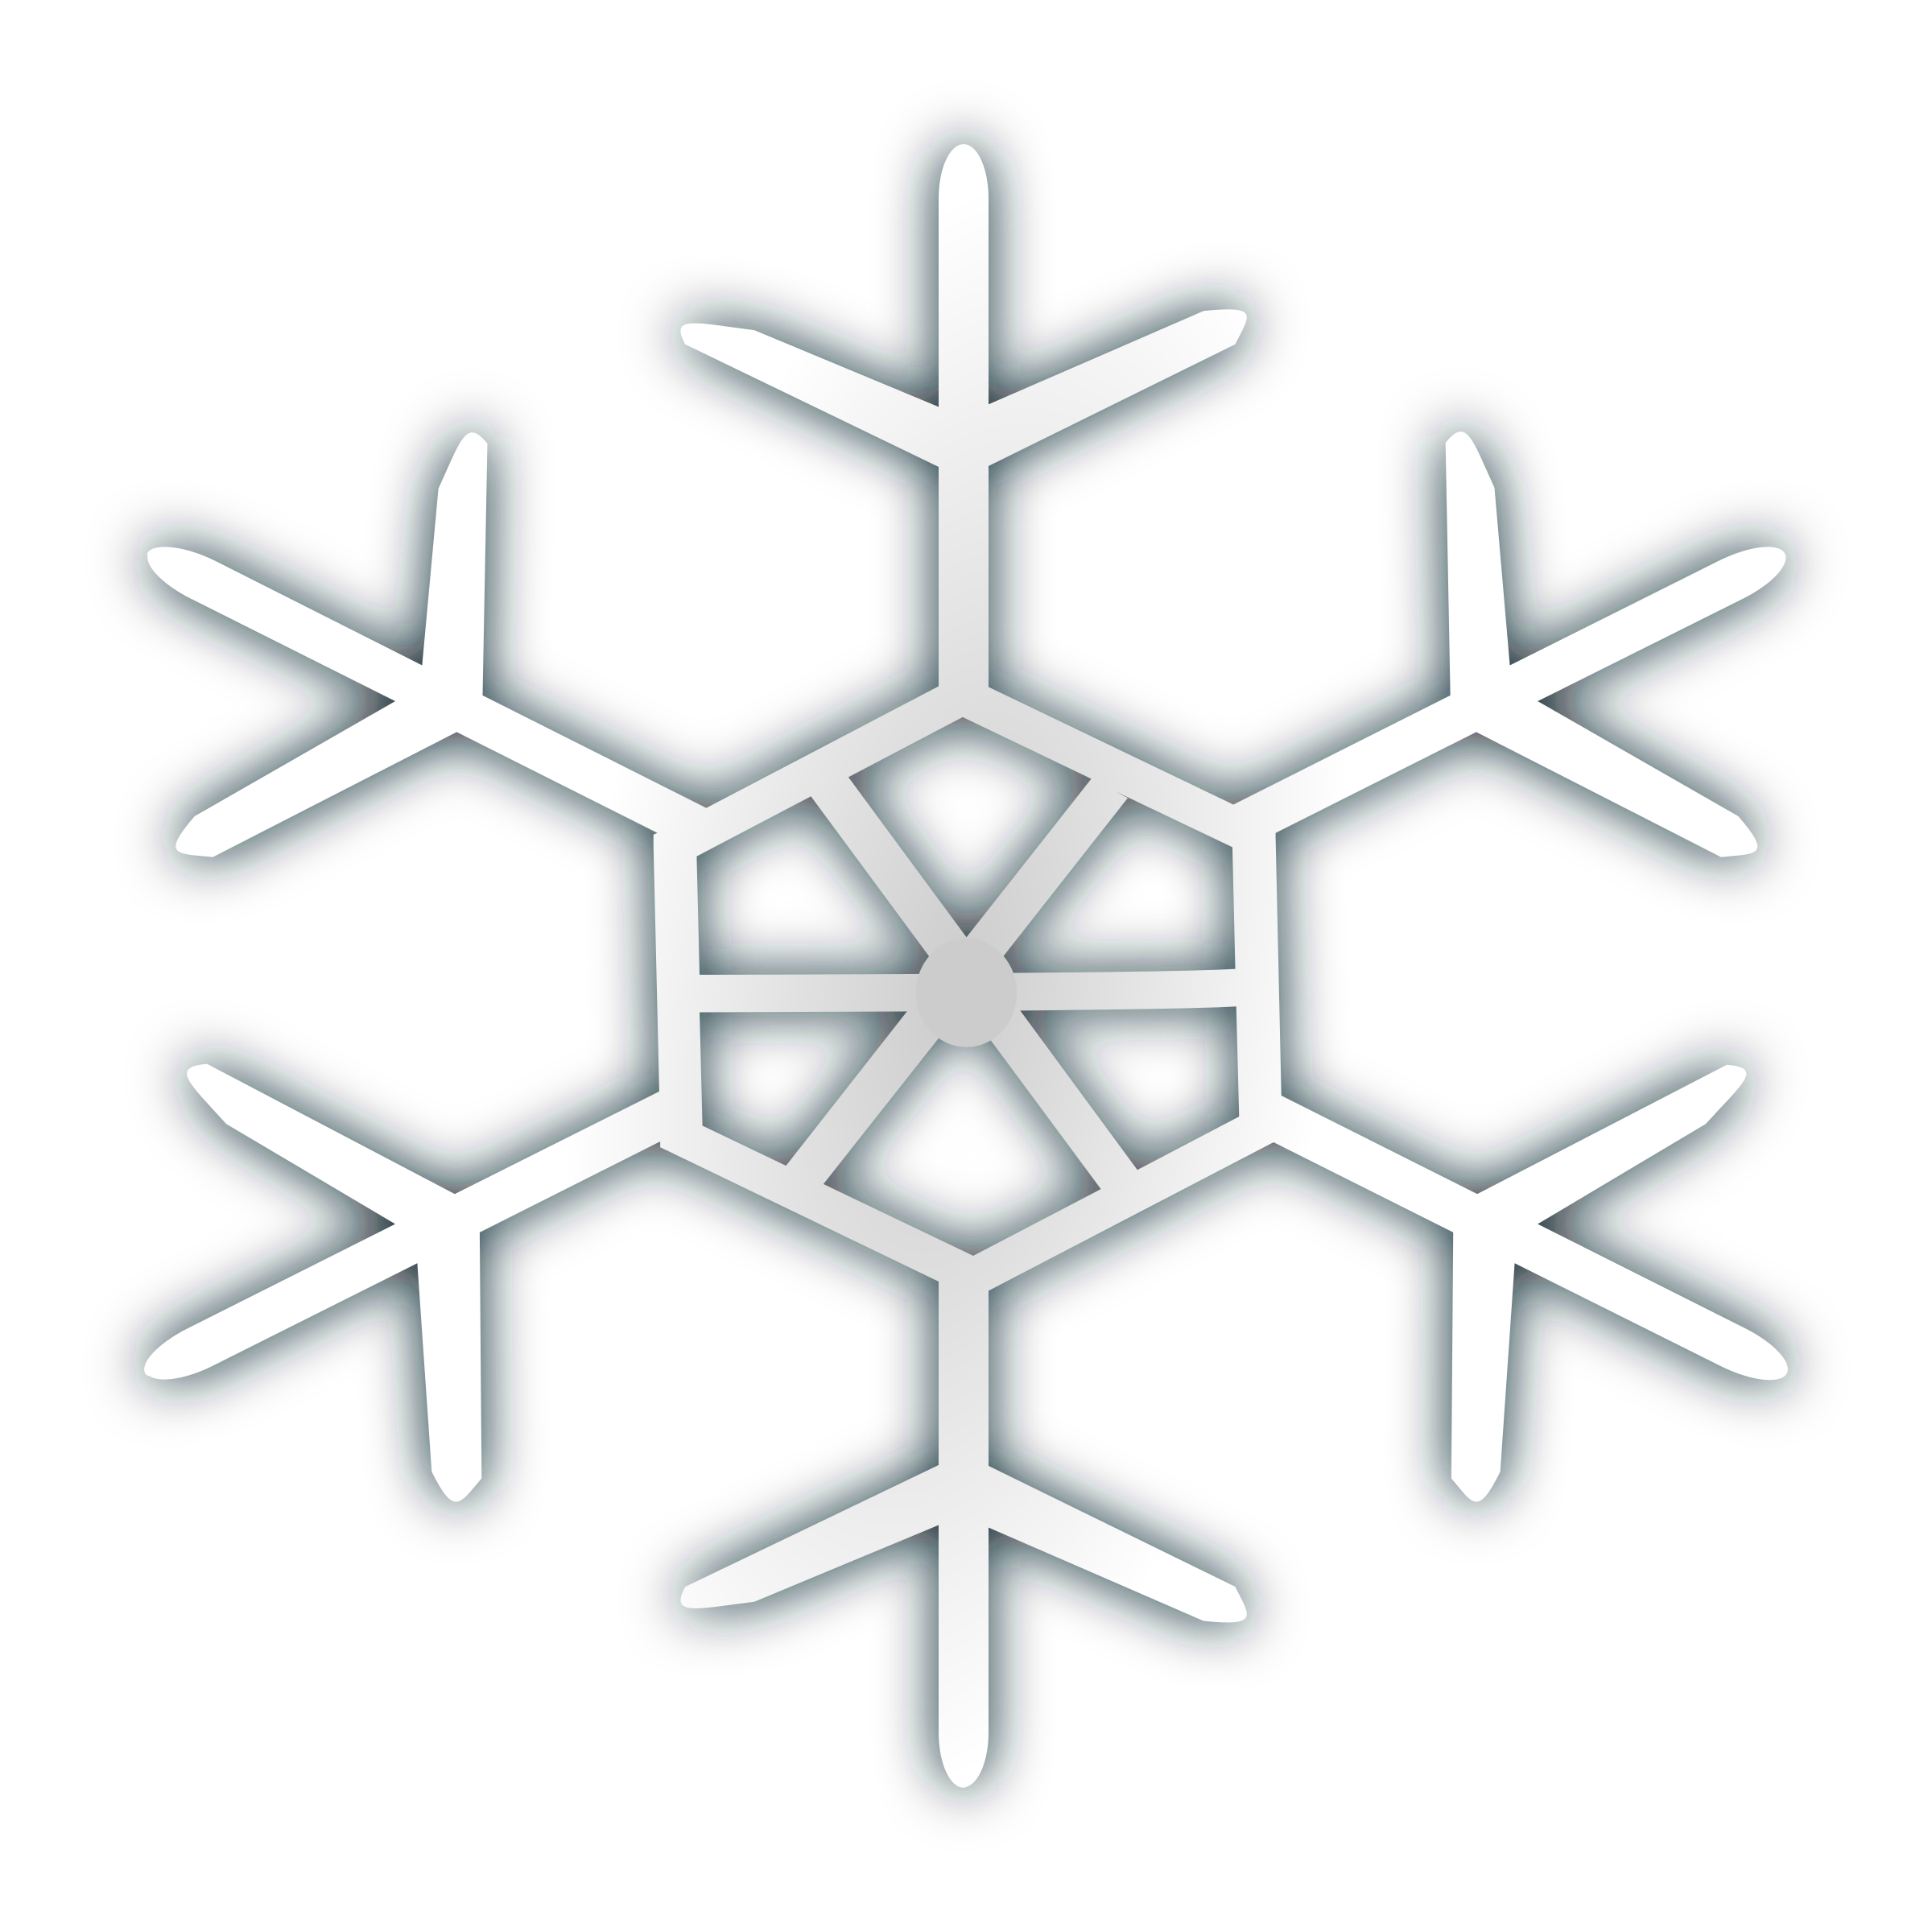 Snow flake icon 4 by netalloy